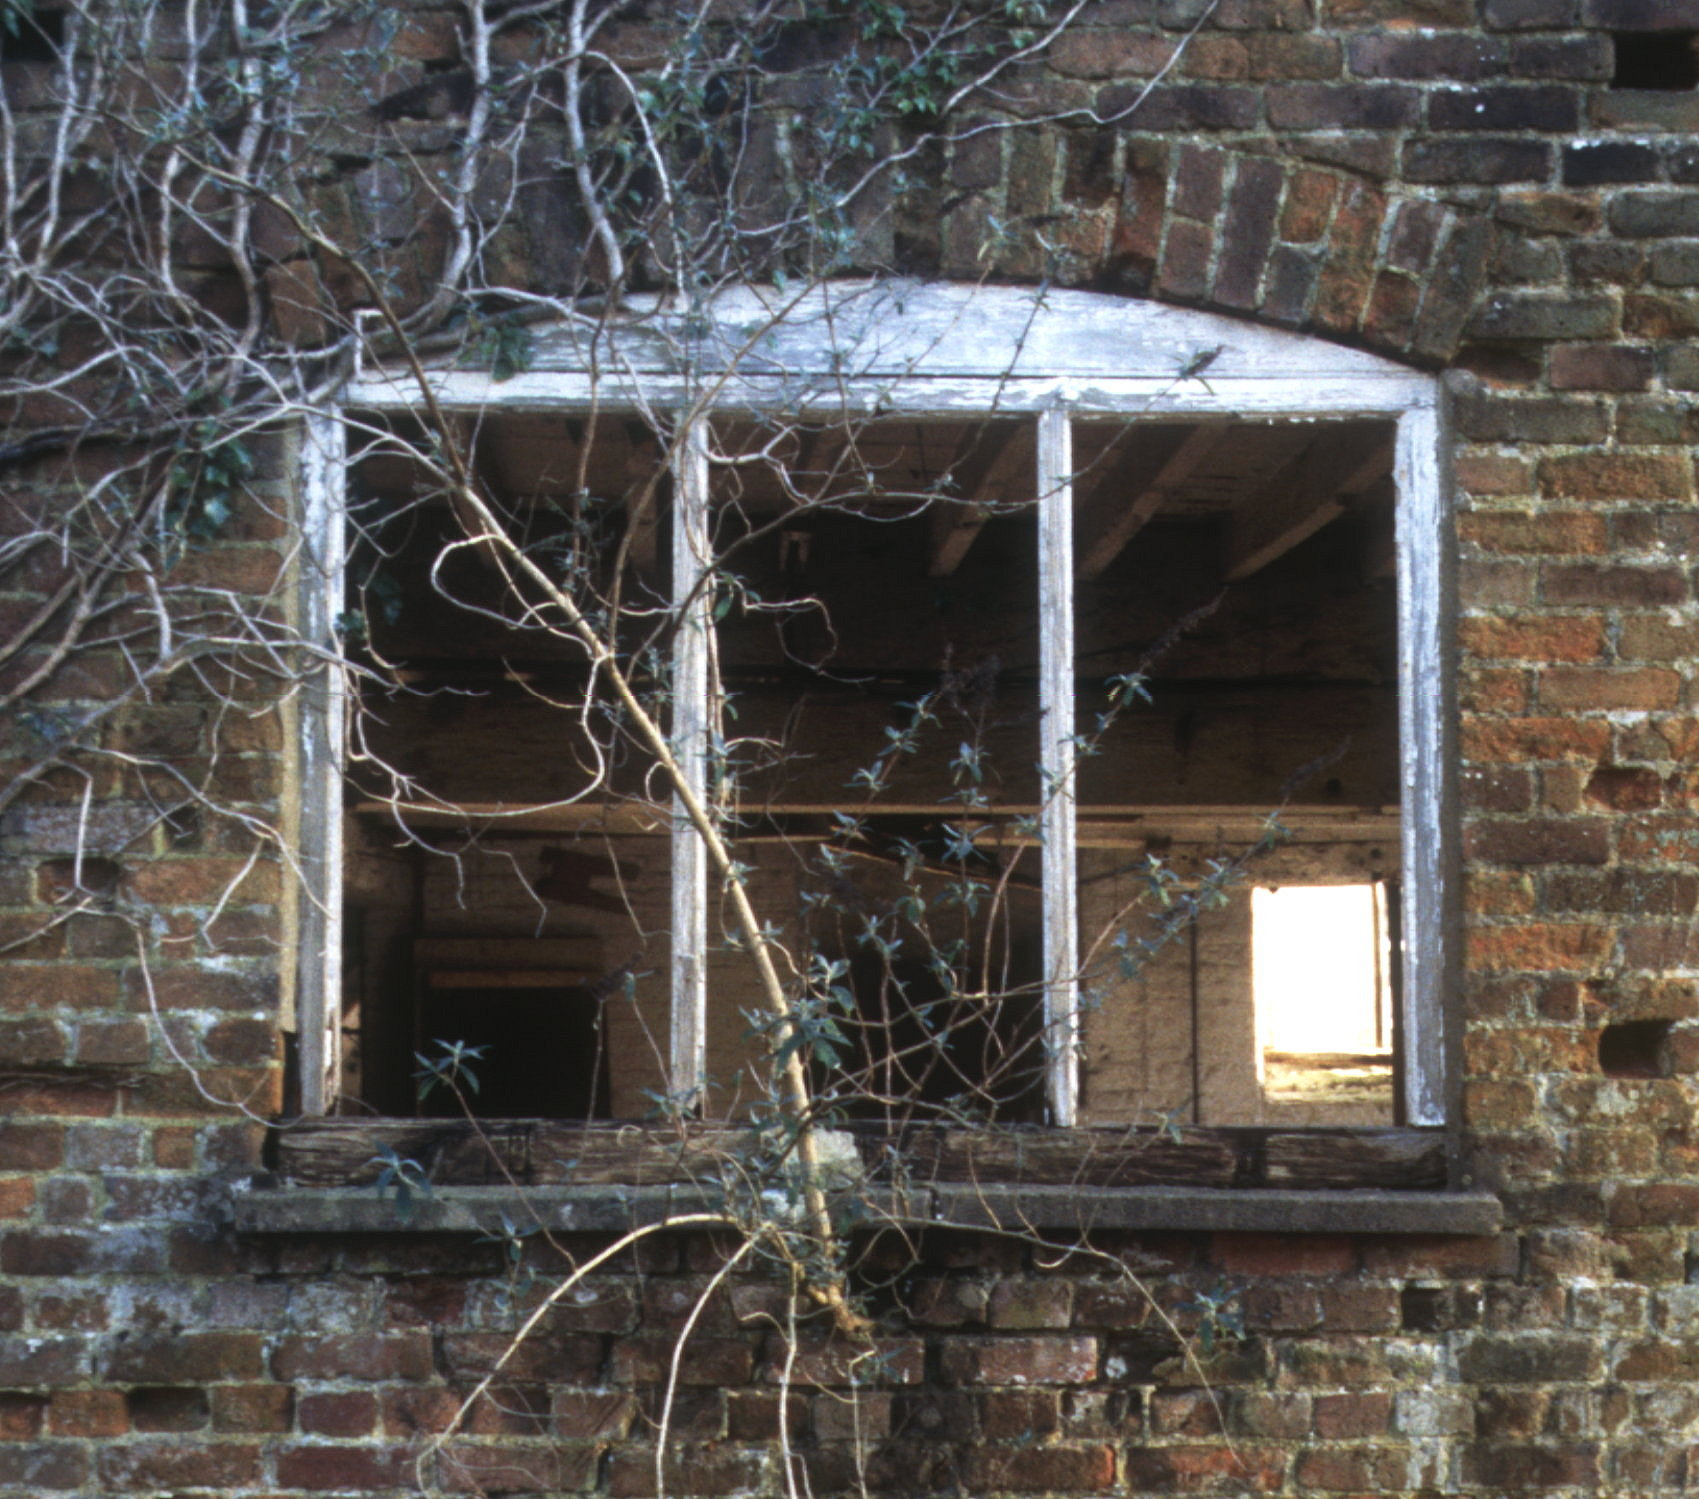 holcombe-mill-feb2000-window